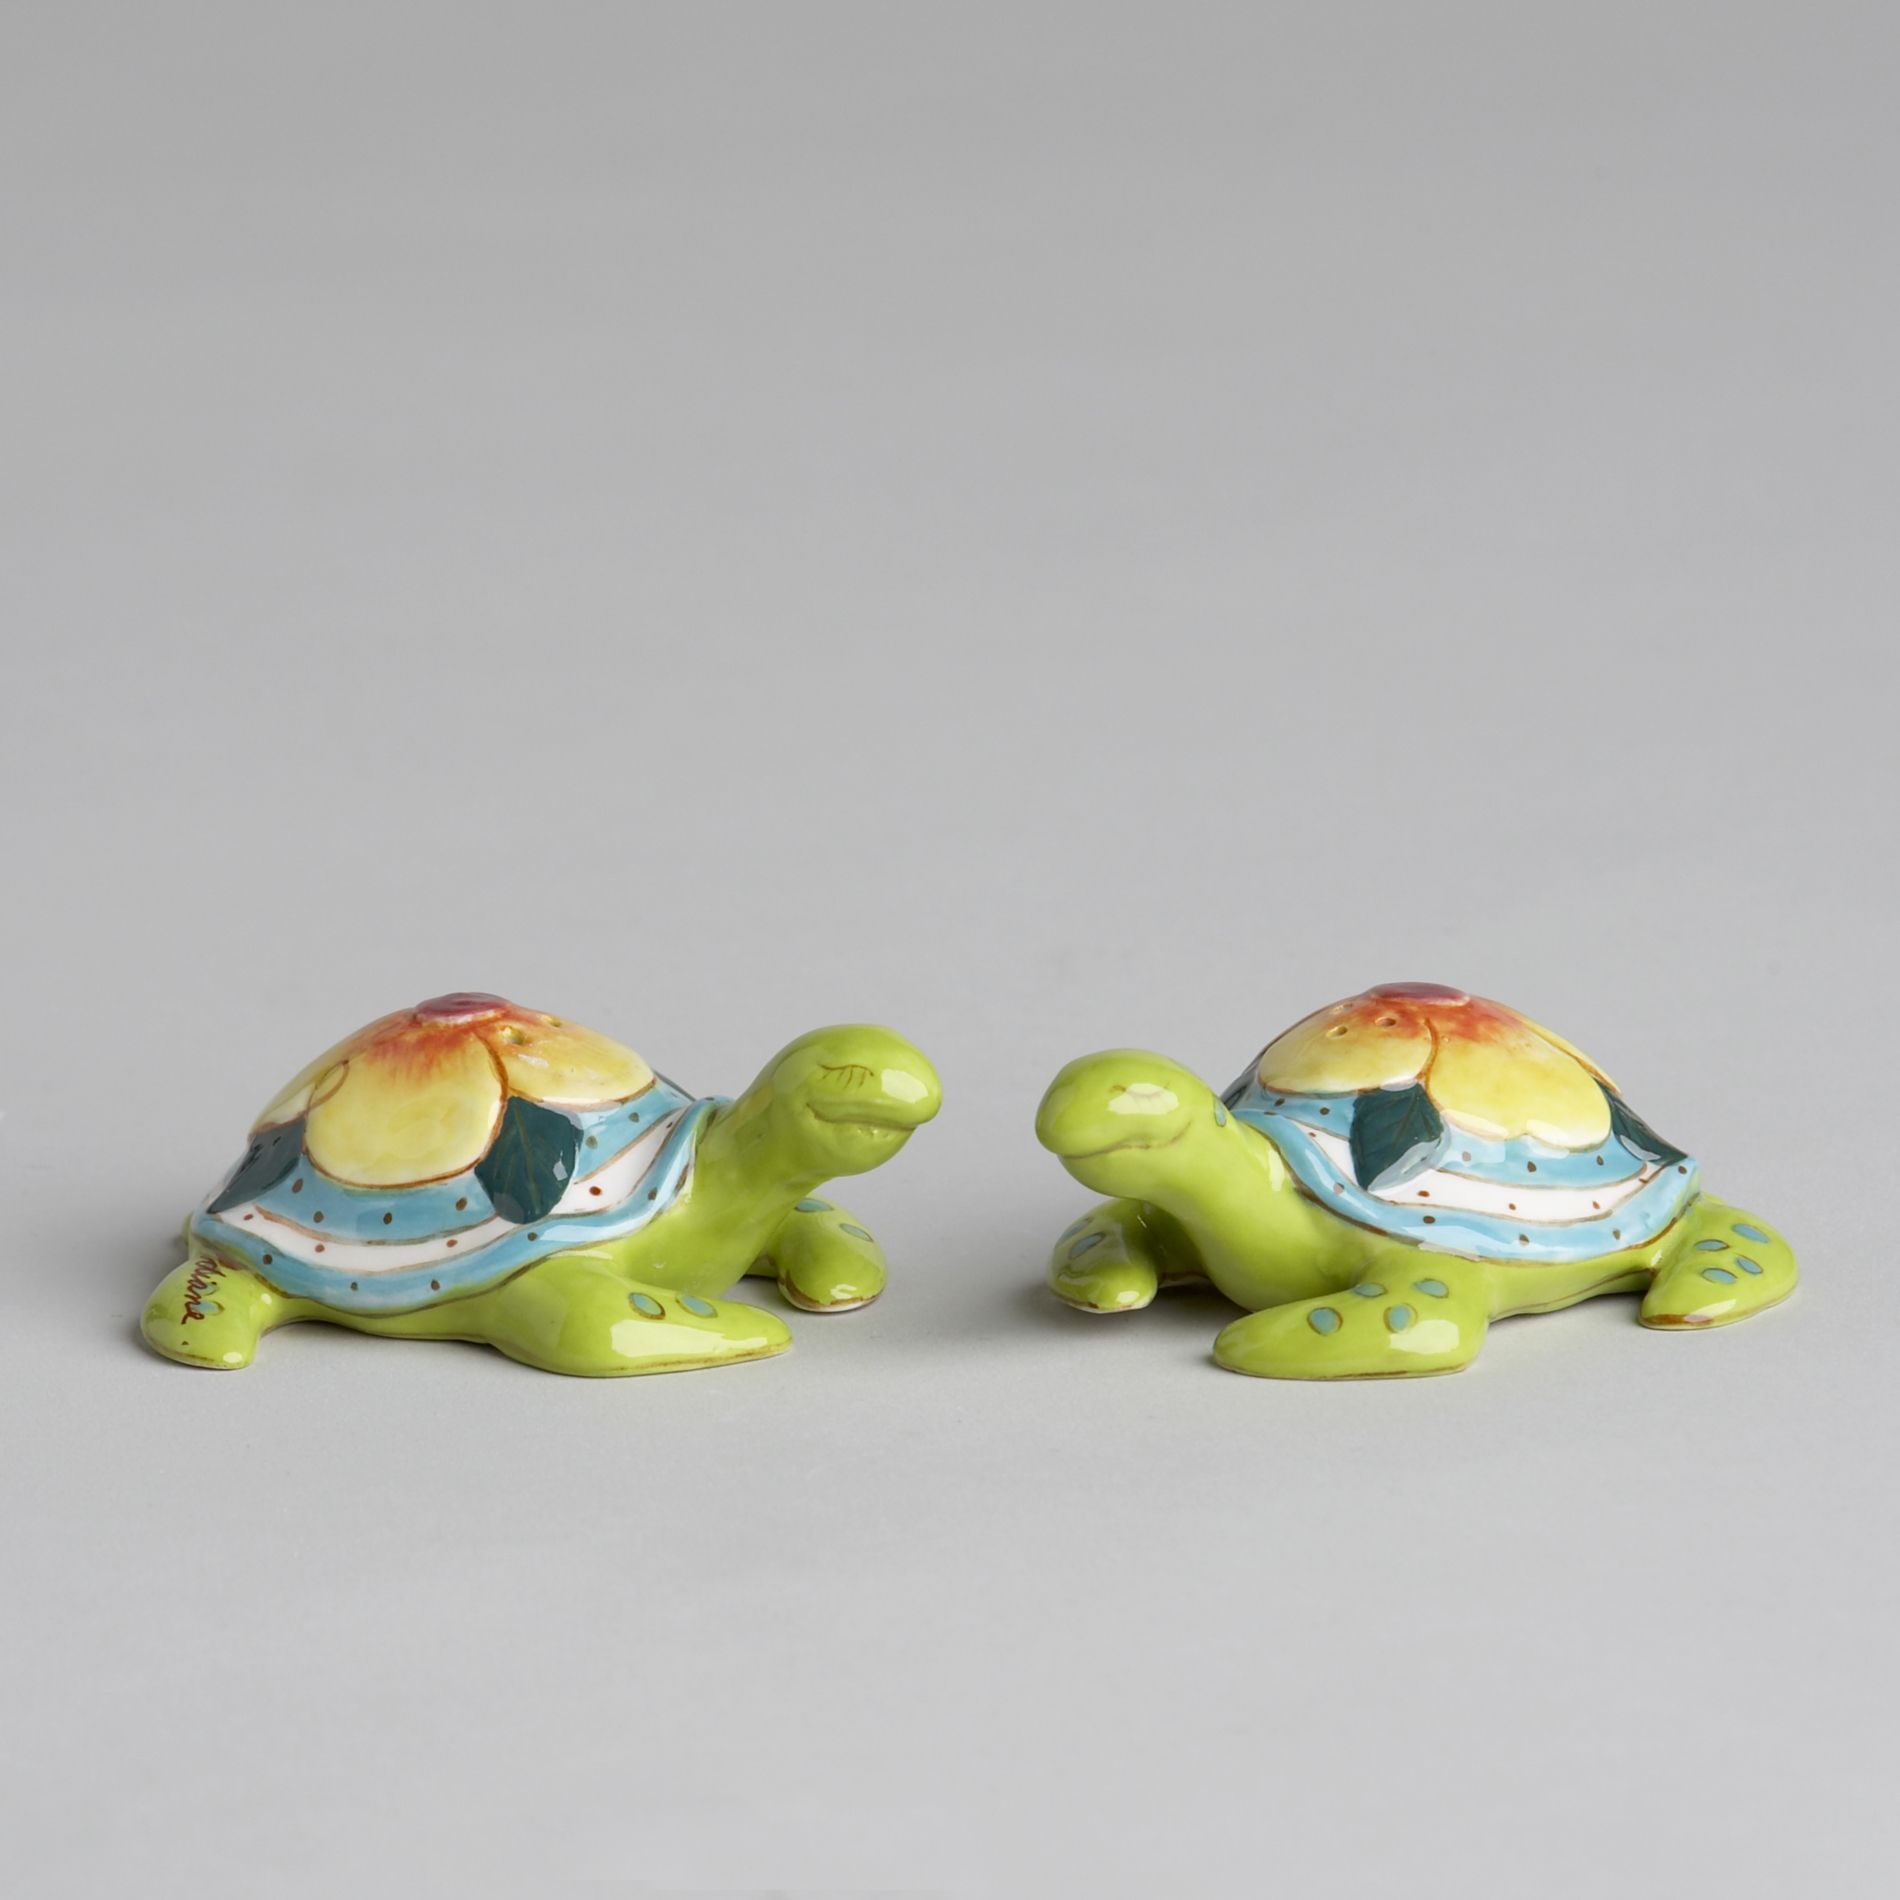 Bomba Turtle Salt & Pepper Shaker Set                                                                                            at mygofer.com